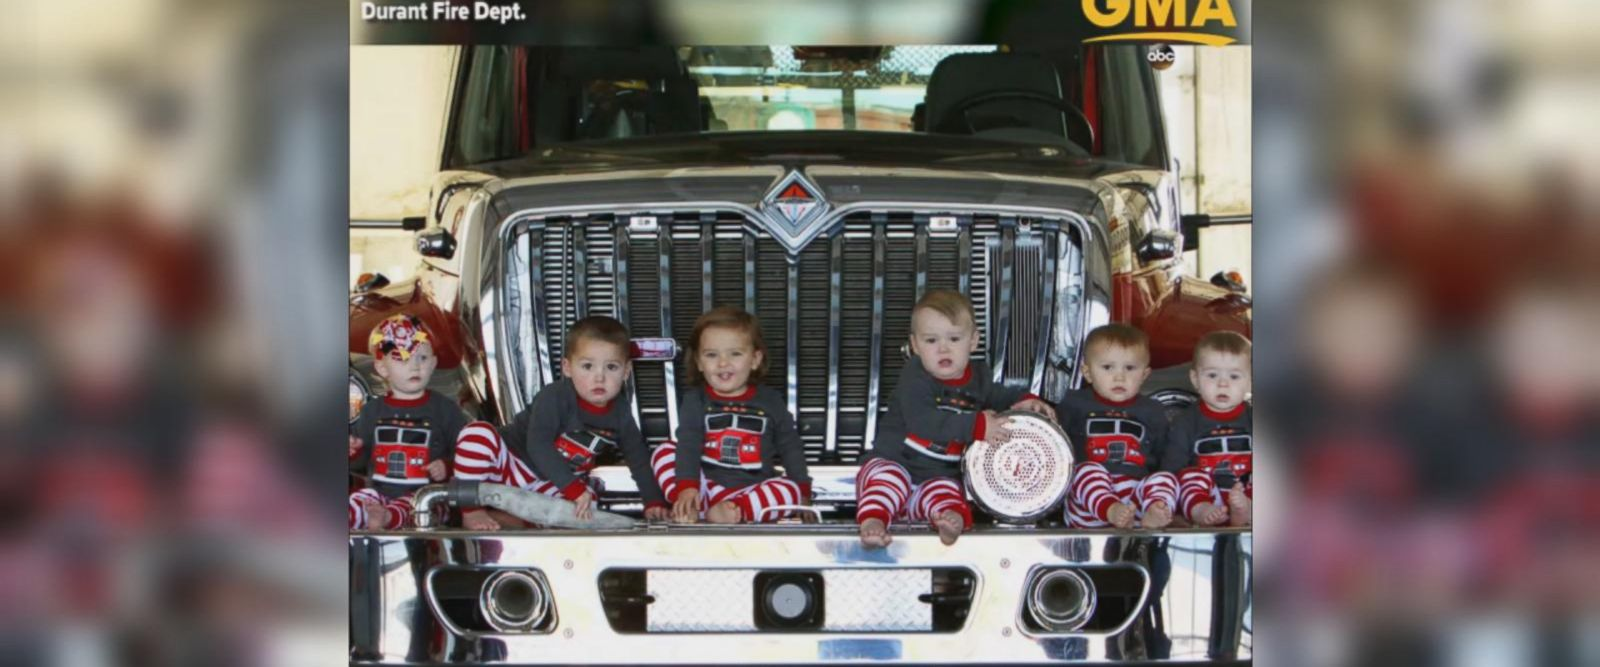 VIDEO: 6 firefighter babies born within months re-create station Christmas card 1 year later